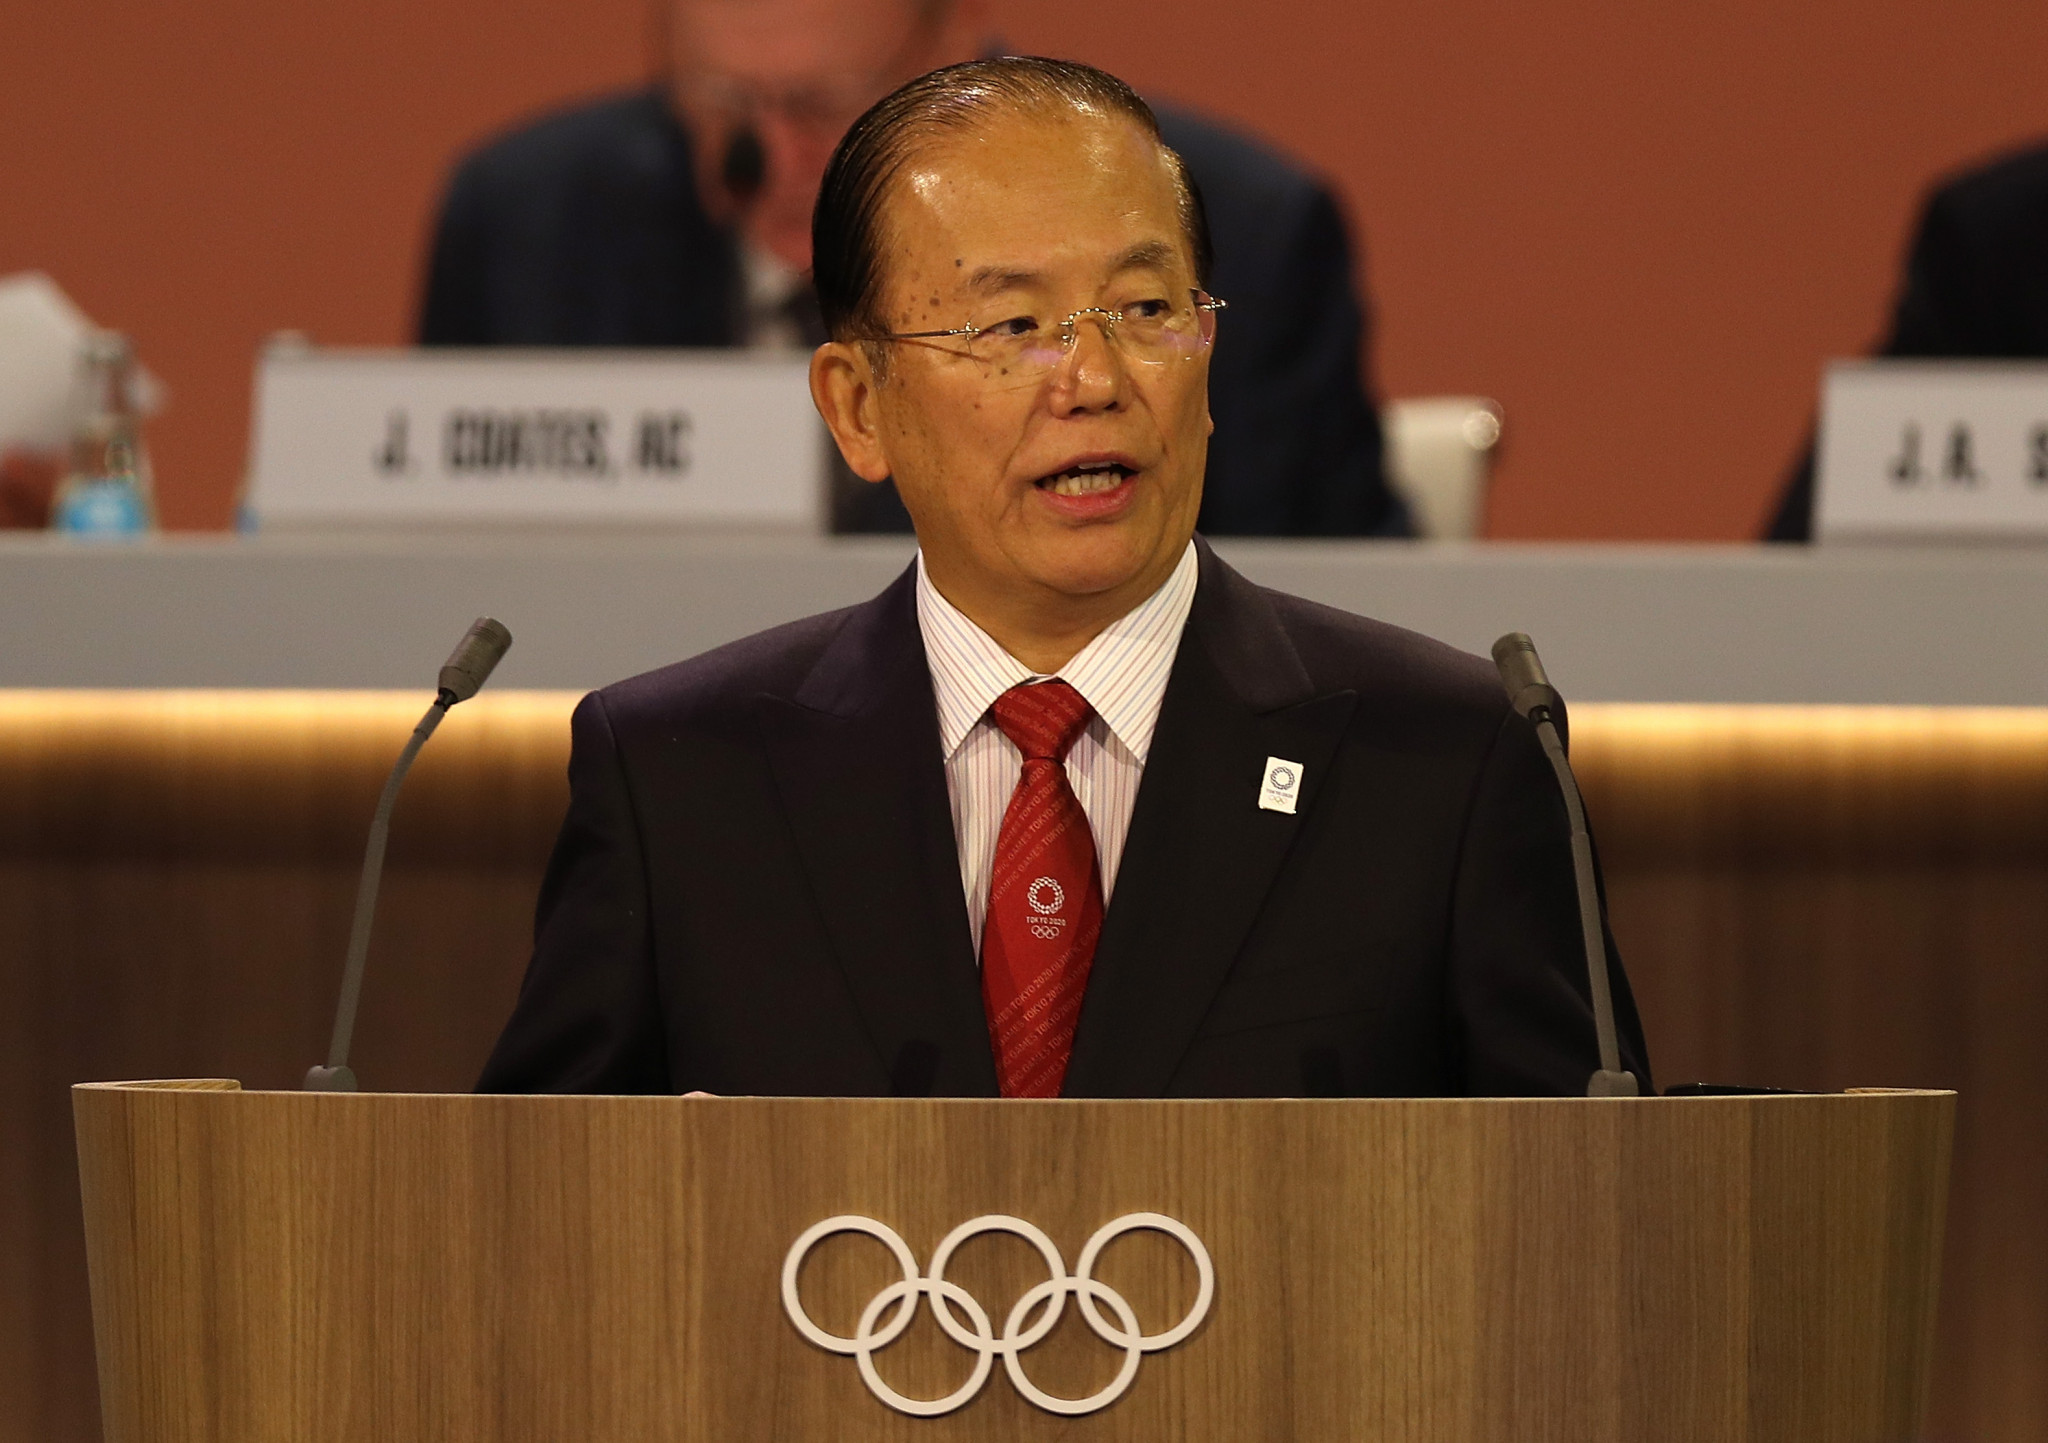 Japan may ease entry rules for Tokyo 2020 athletes, Mutō hints